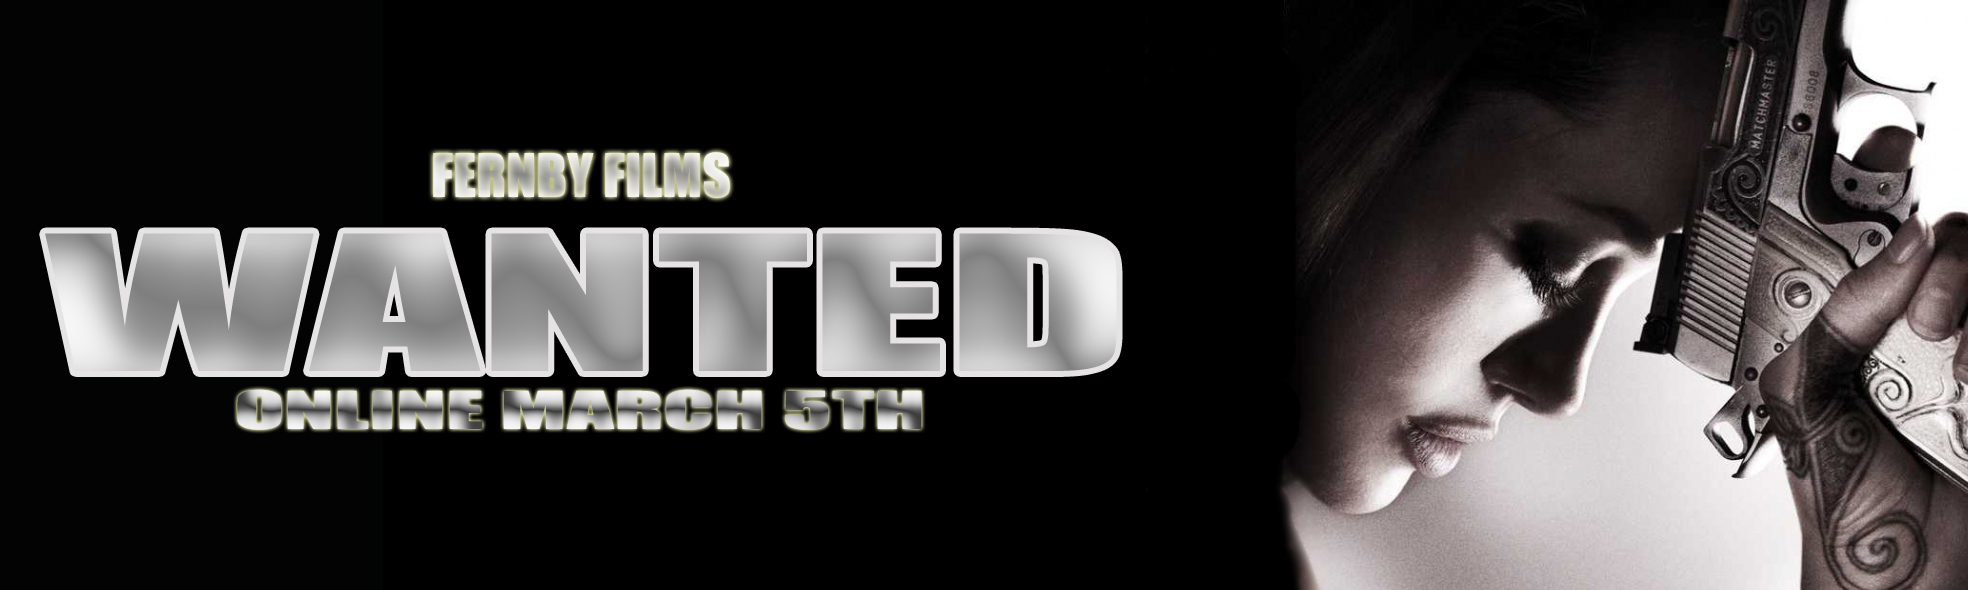 wanted-promo-5